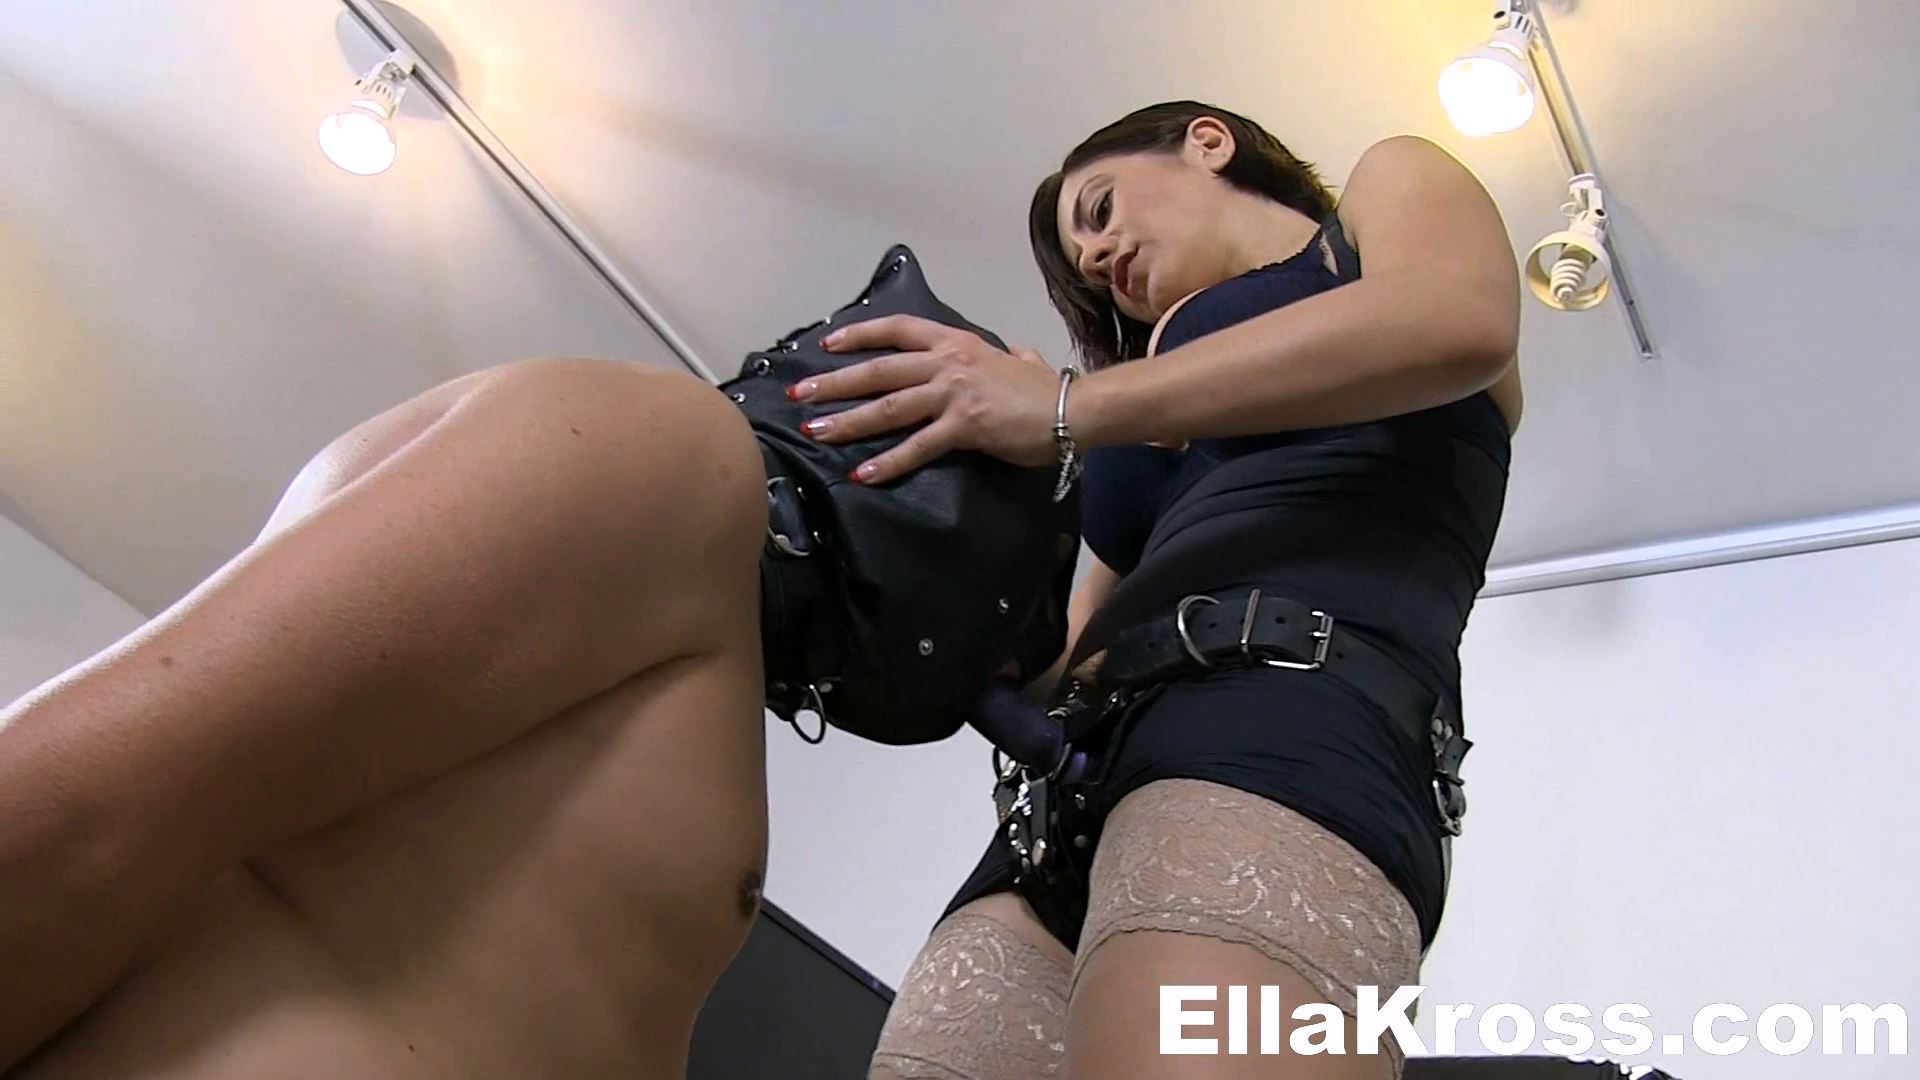 Ella Kross In Scene: Throat Fuck The Lazy - ELLAKROSS - FULL HD/1080p/MP4